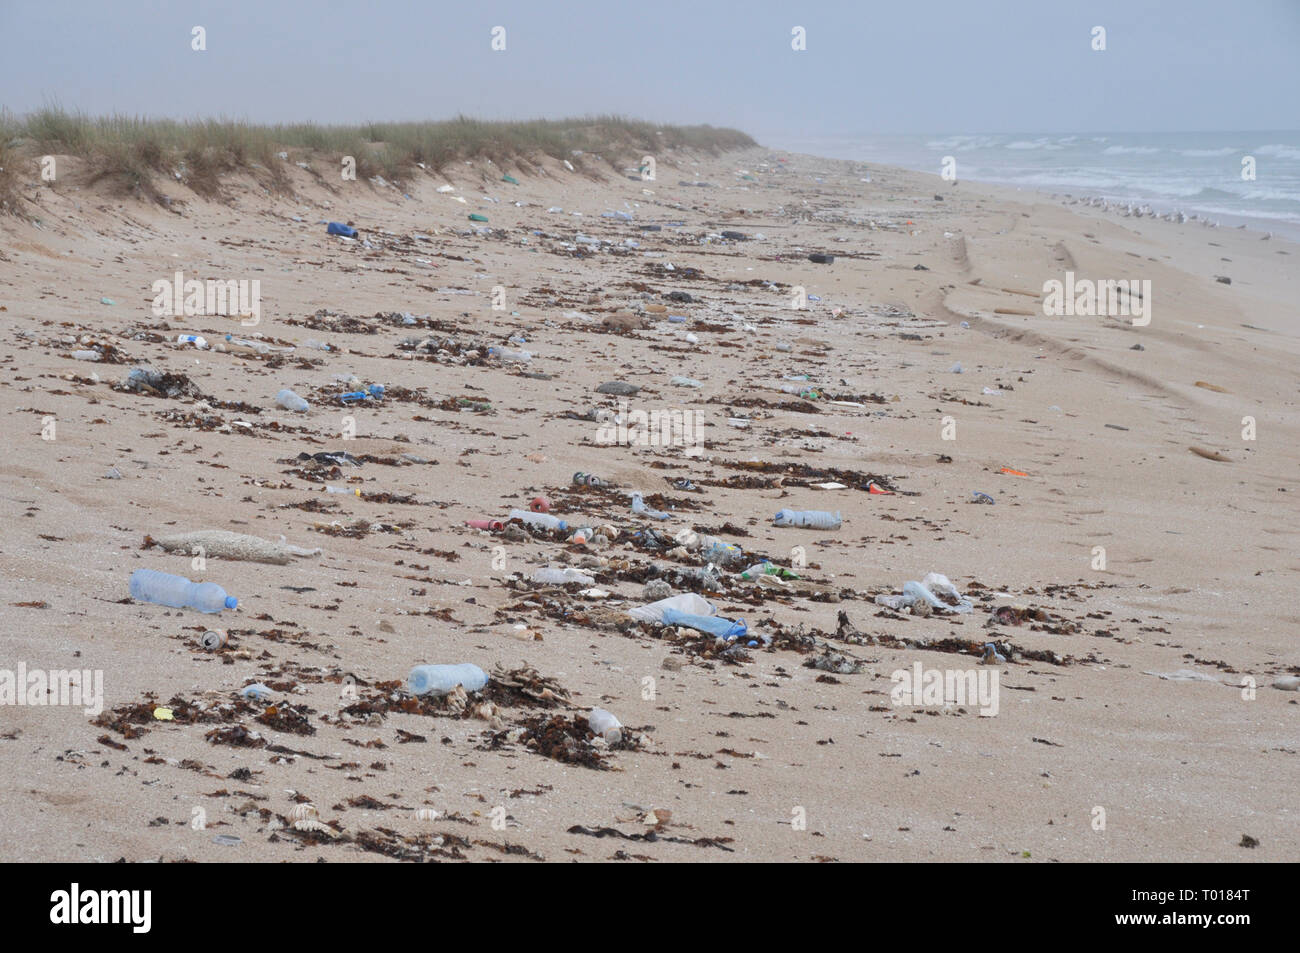 polluted beach in eastern Oman - Stock Image